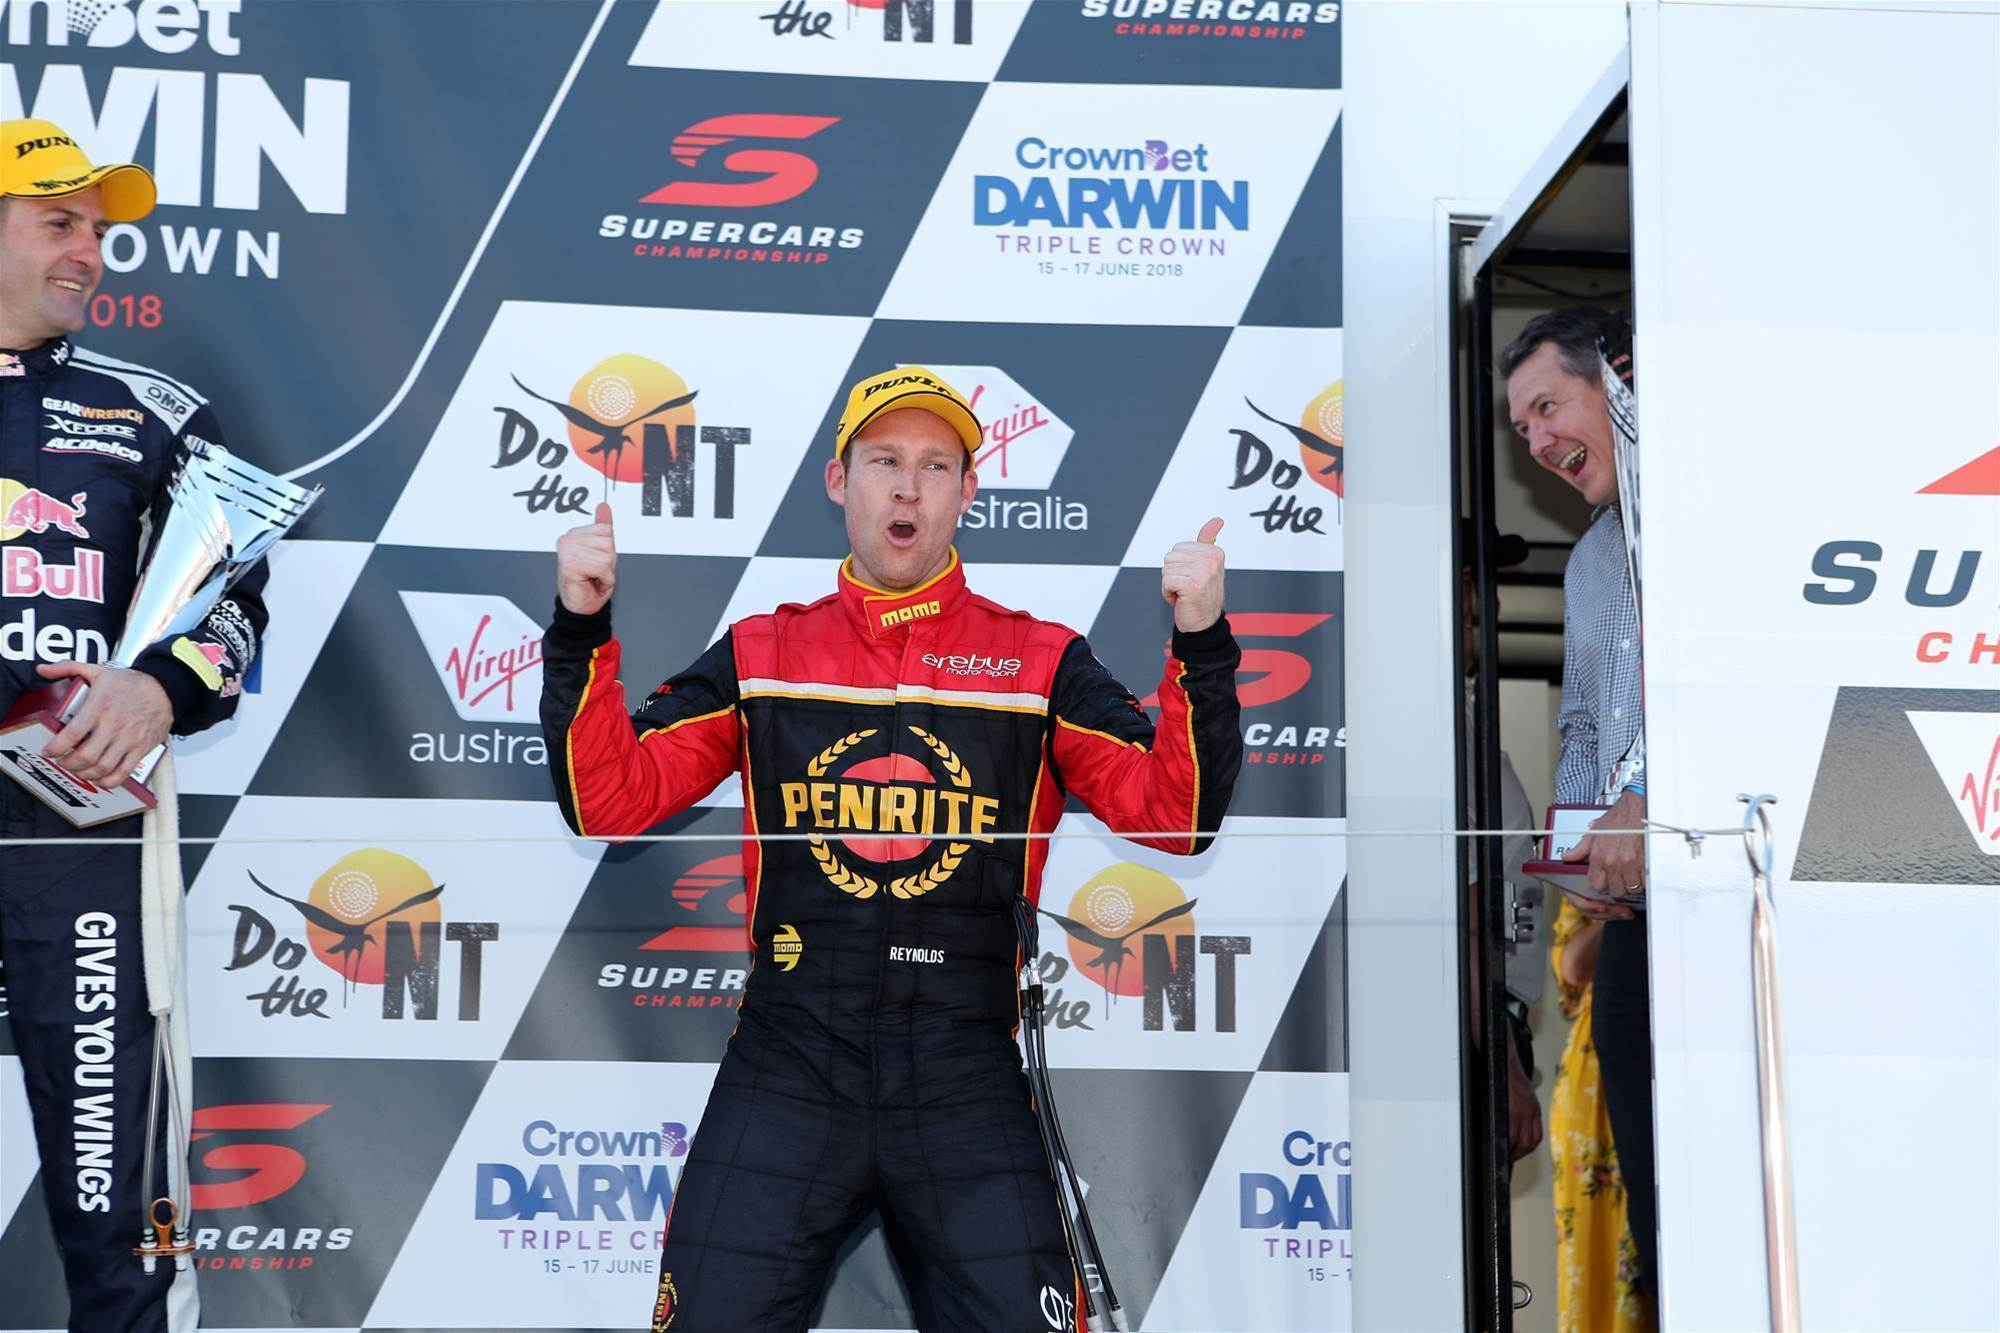 Reynolds triumphs in top end